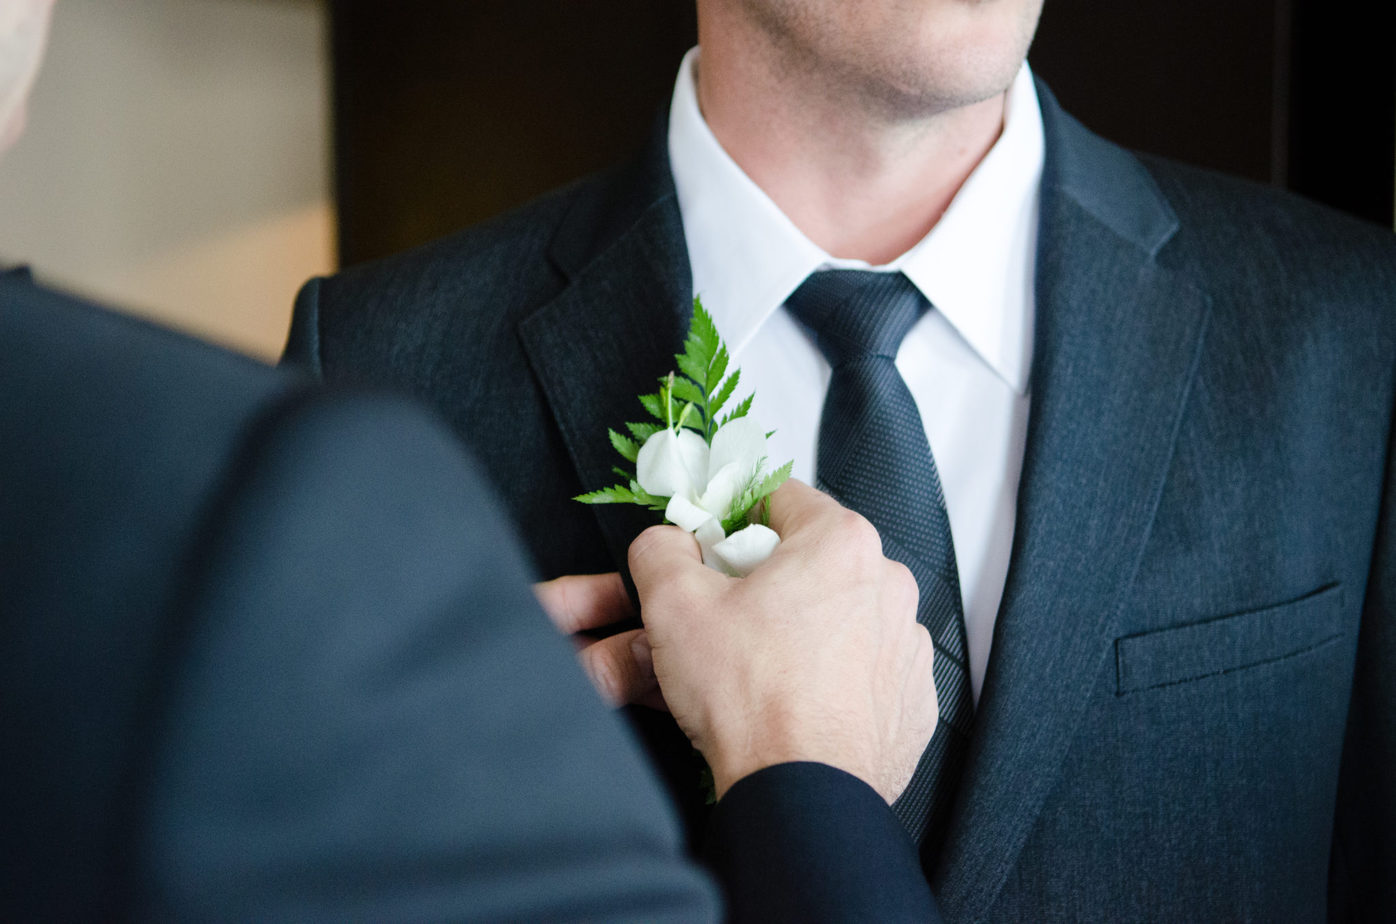 How to Choose Your Groomsmen